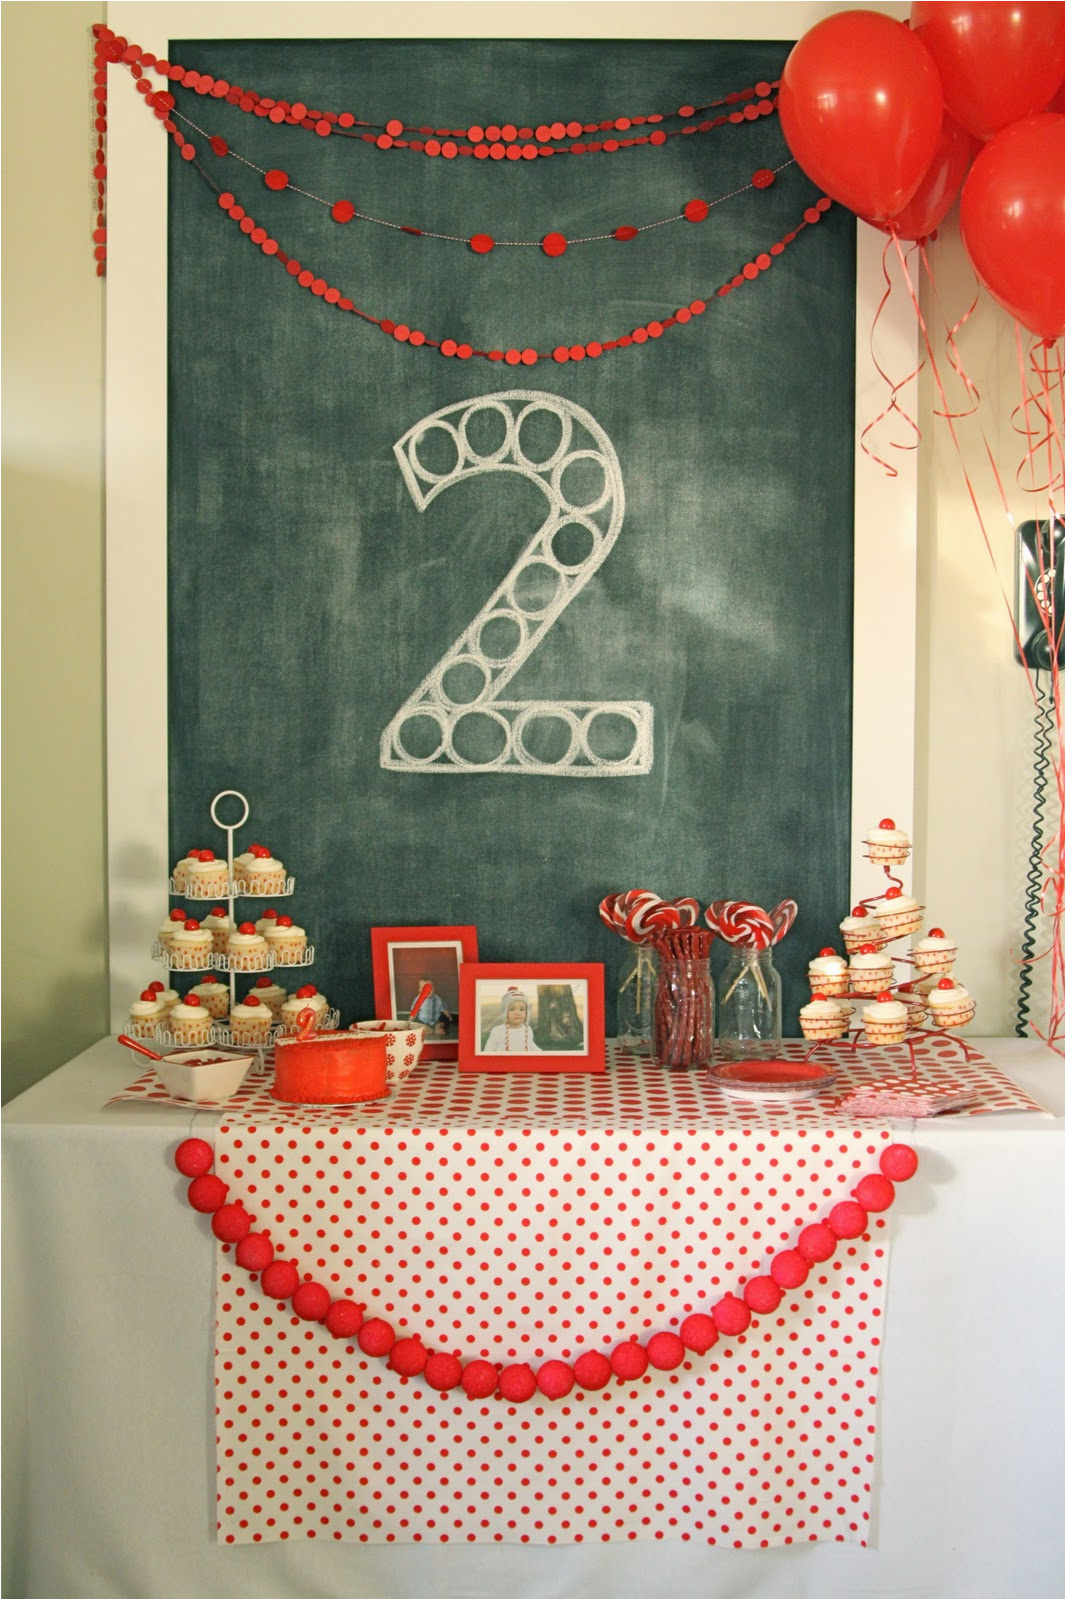 red ball party levis second birthday